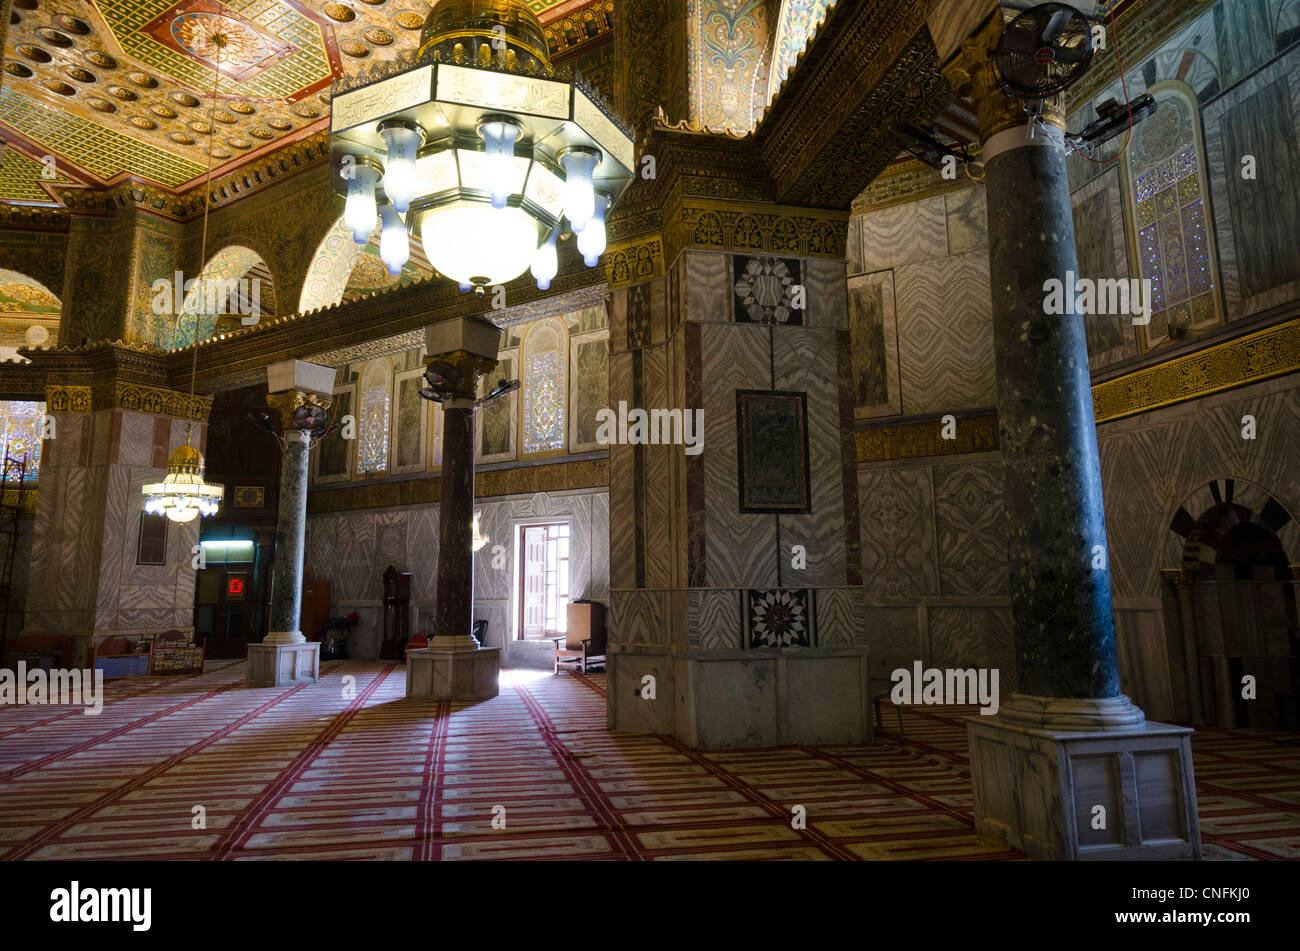 interior of the Al Haram Al Sharif mosque. esplanade of the mosques. Jerusalem Old City. Israel - Stock Image